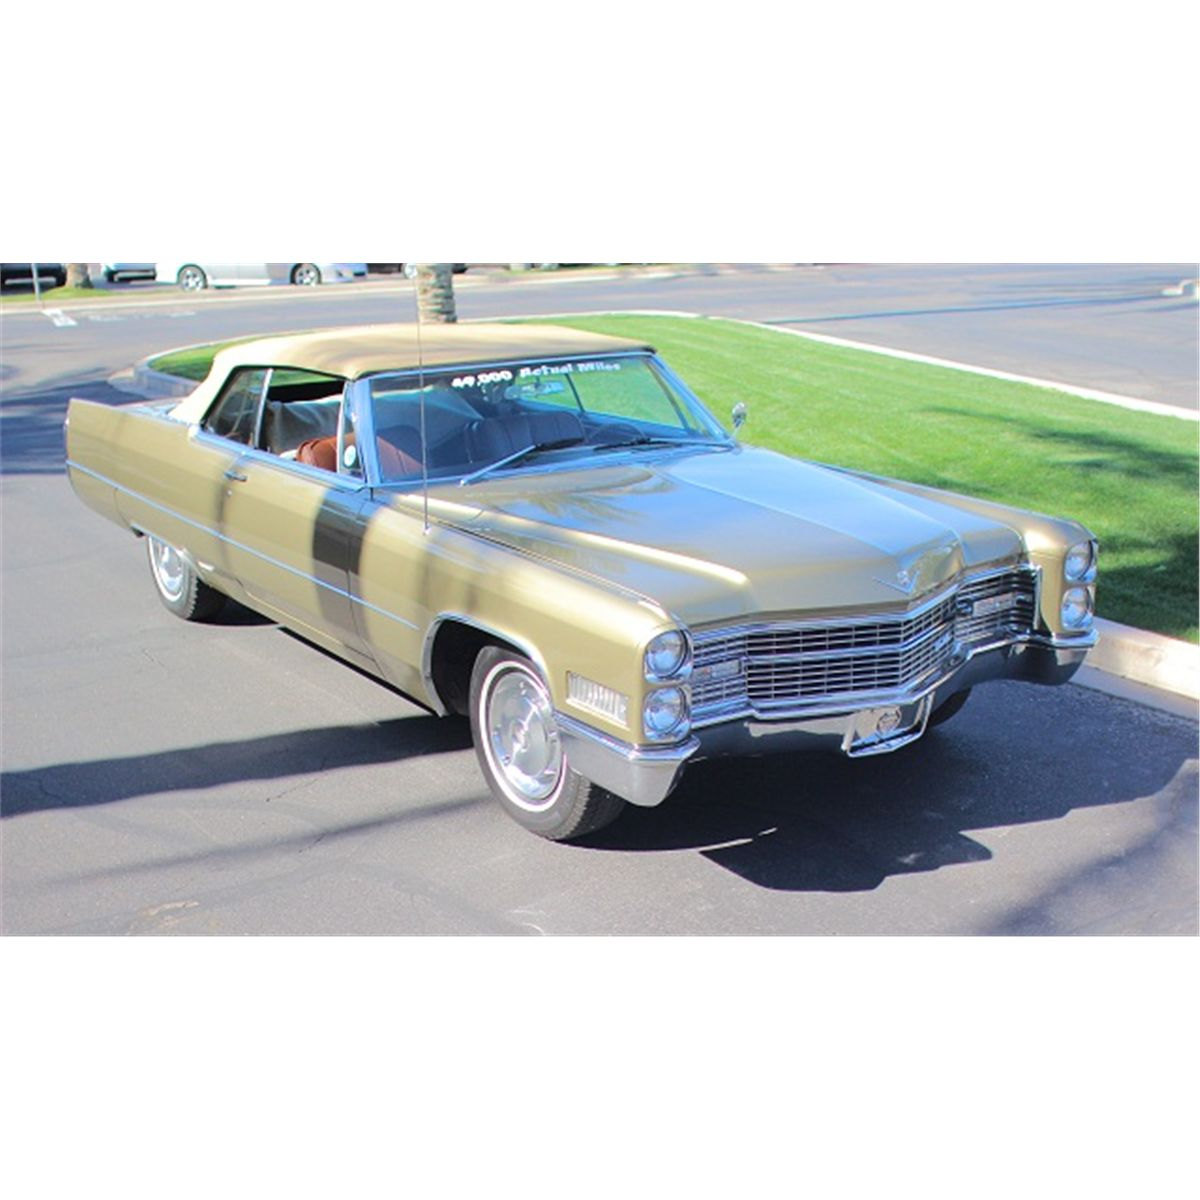 Scottsdale Cadillac: 1966 Cadillac Deville